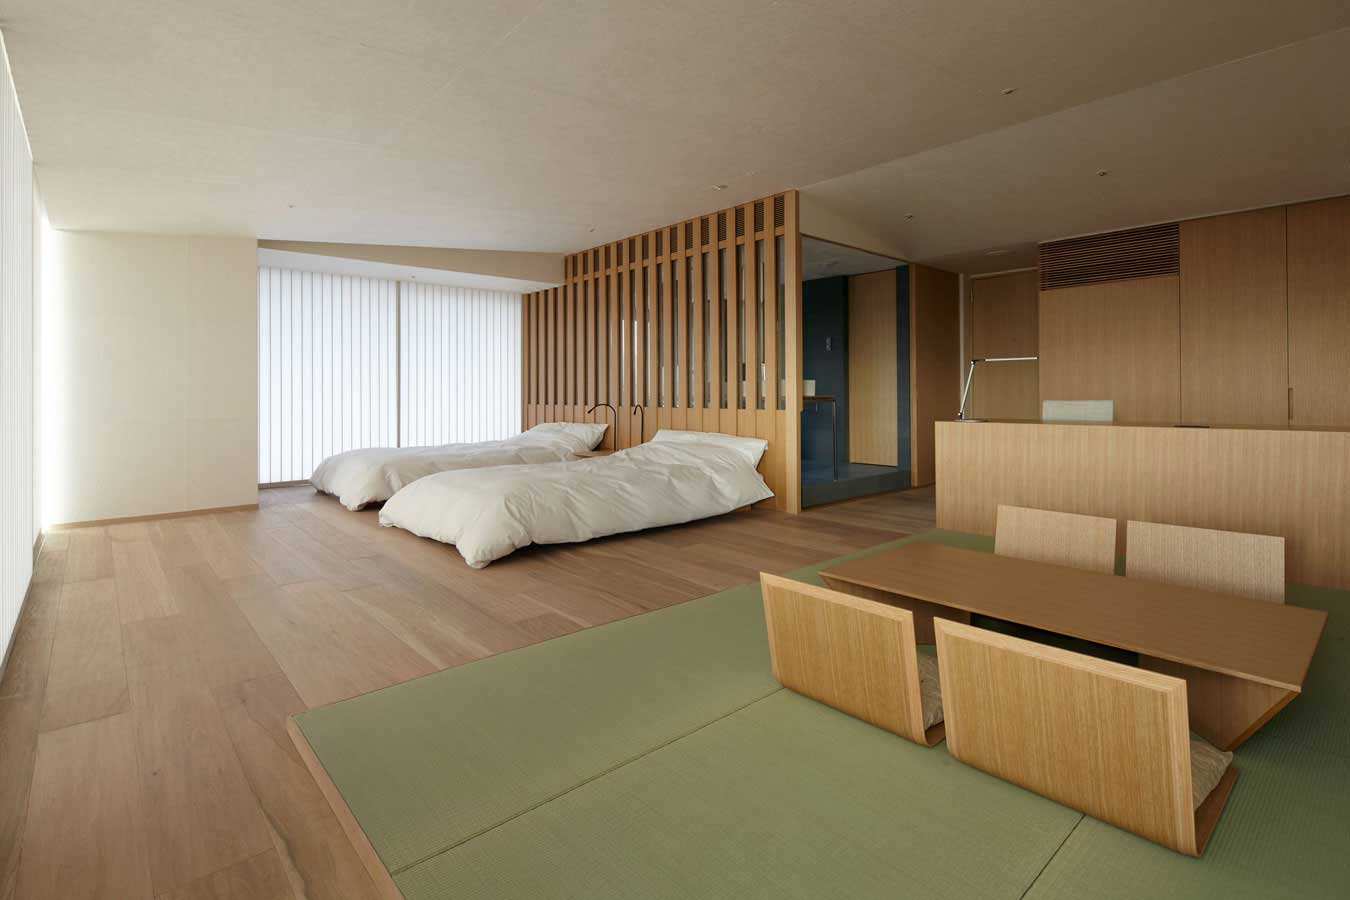 Modern japanese bedroom design 11 designs for 11 x 11 room design